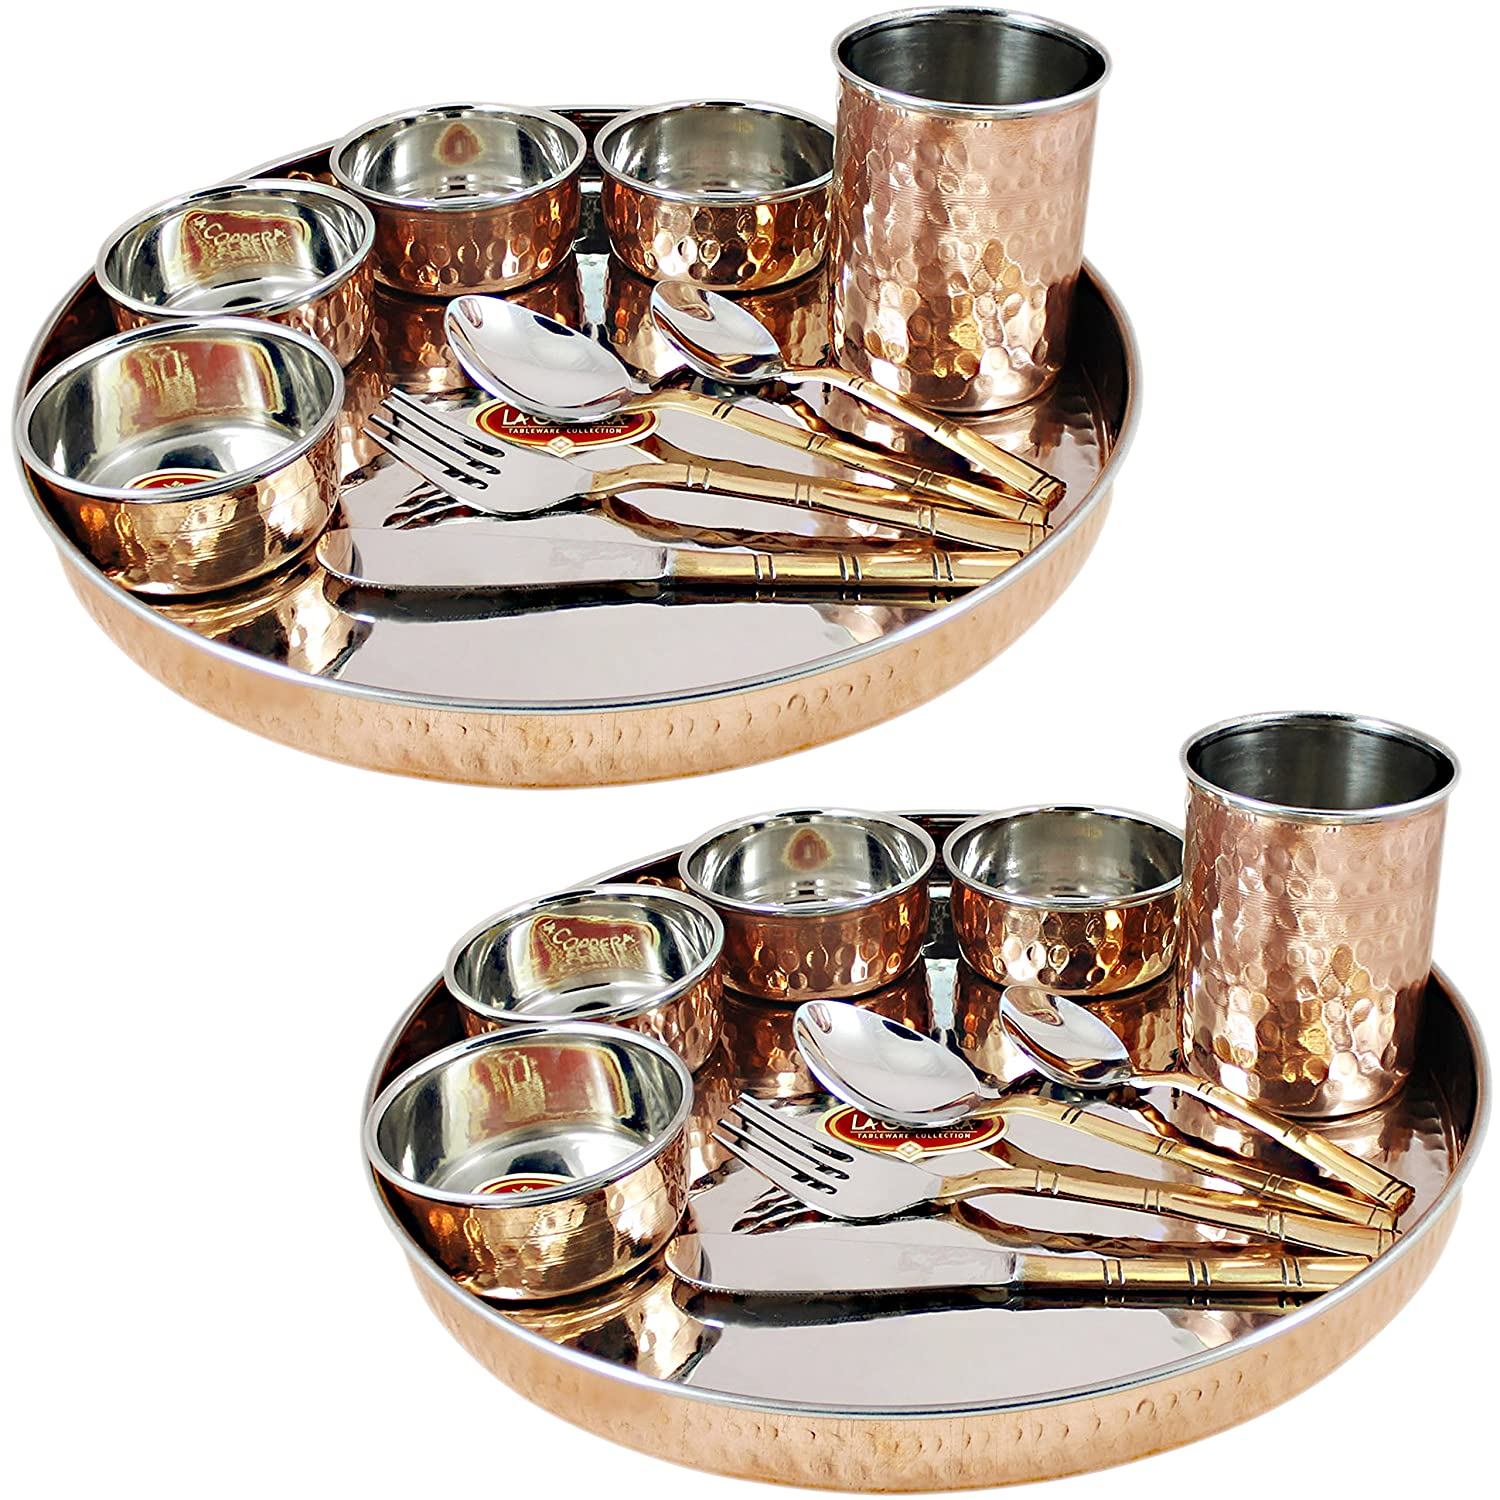 20 Piece Dinnerware Set for 2 - Round Copper Stainless Steel Dinner Plates Bowls Mugs Flatware and Dessert Dishes Amazon.co.uk Kitchen u0026 Home  sc 1 st  Amazon UK & 20 Piece Dinnerware Set for 2 - Round Copper Stainless Steel Dinner ...